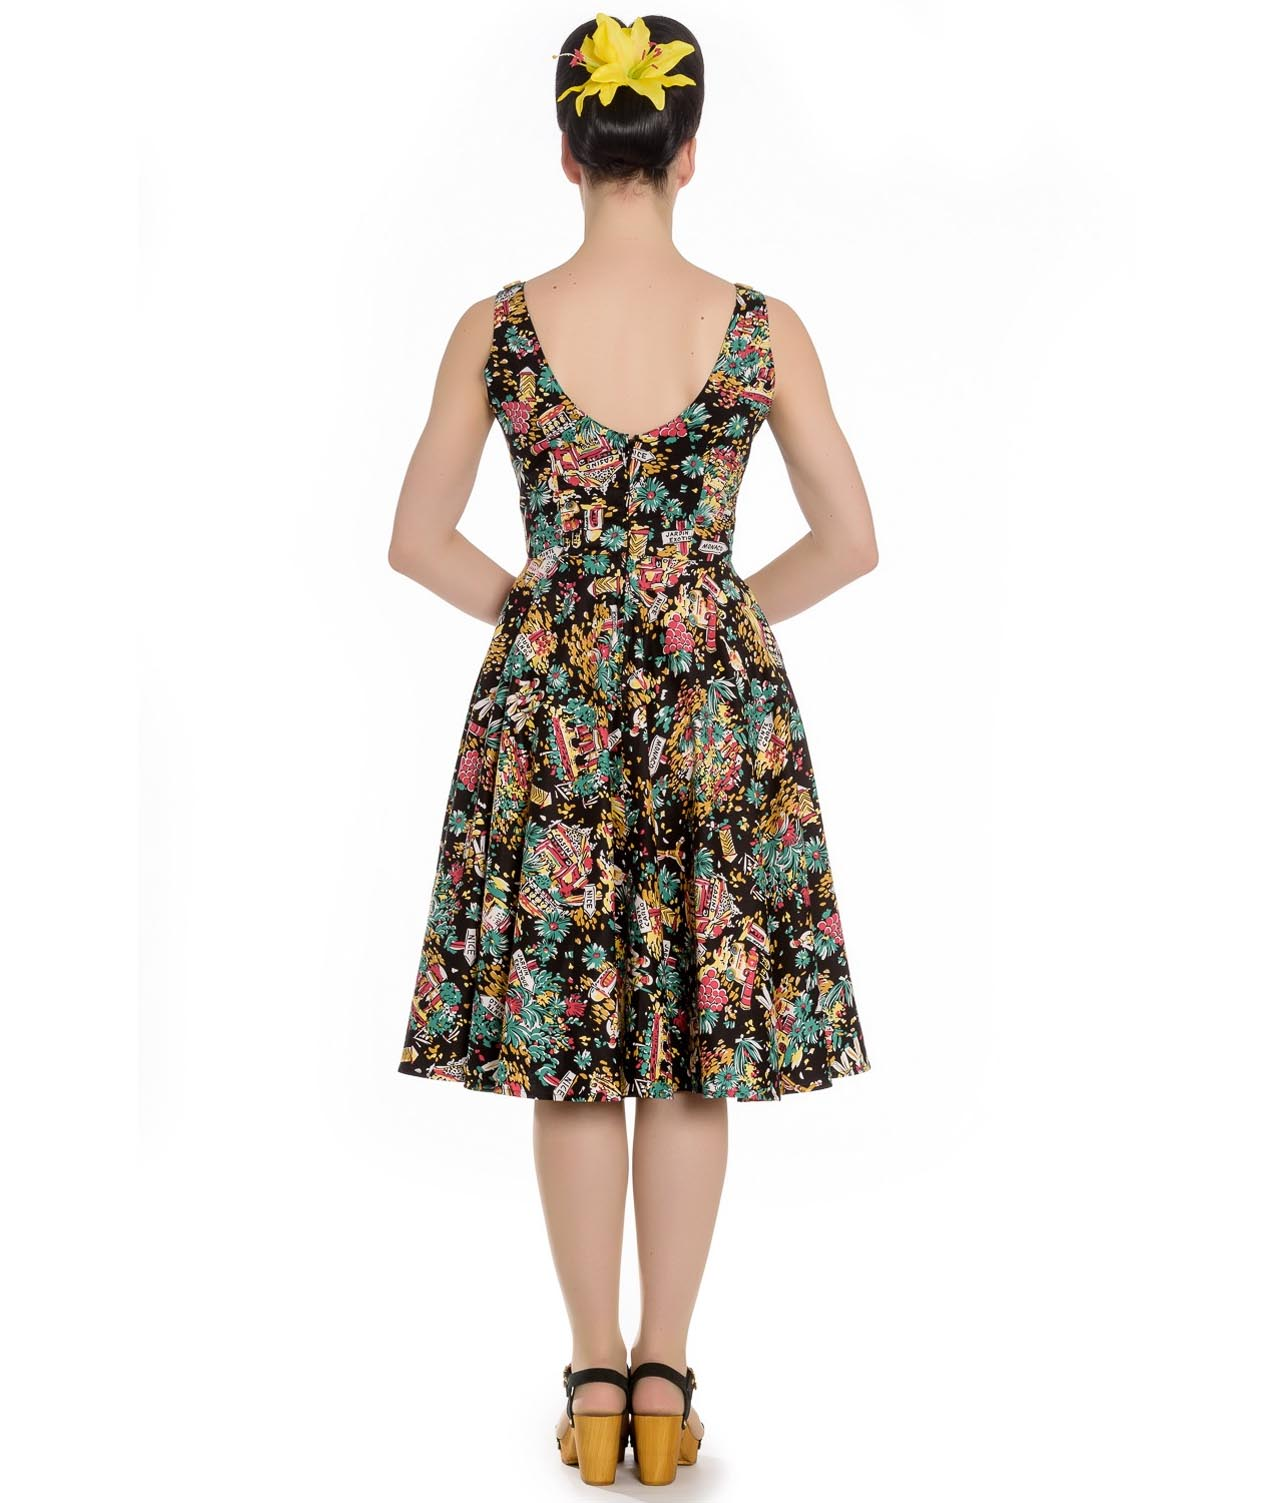 Hell-Bunny-Summer-50s-Black-Dress-MONTE-CARLO-Tropical-Holiday-All-Sizes thumbnail 11